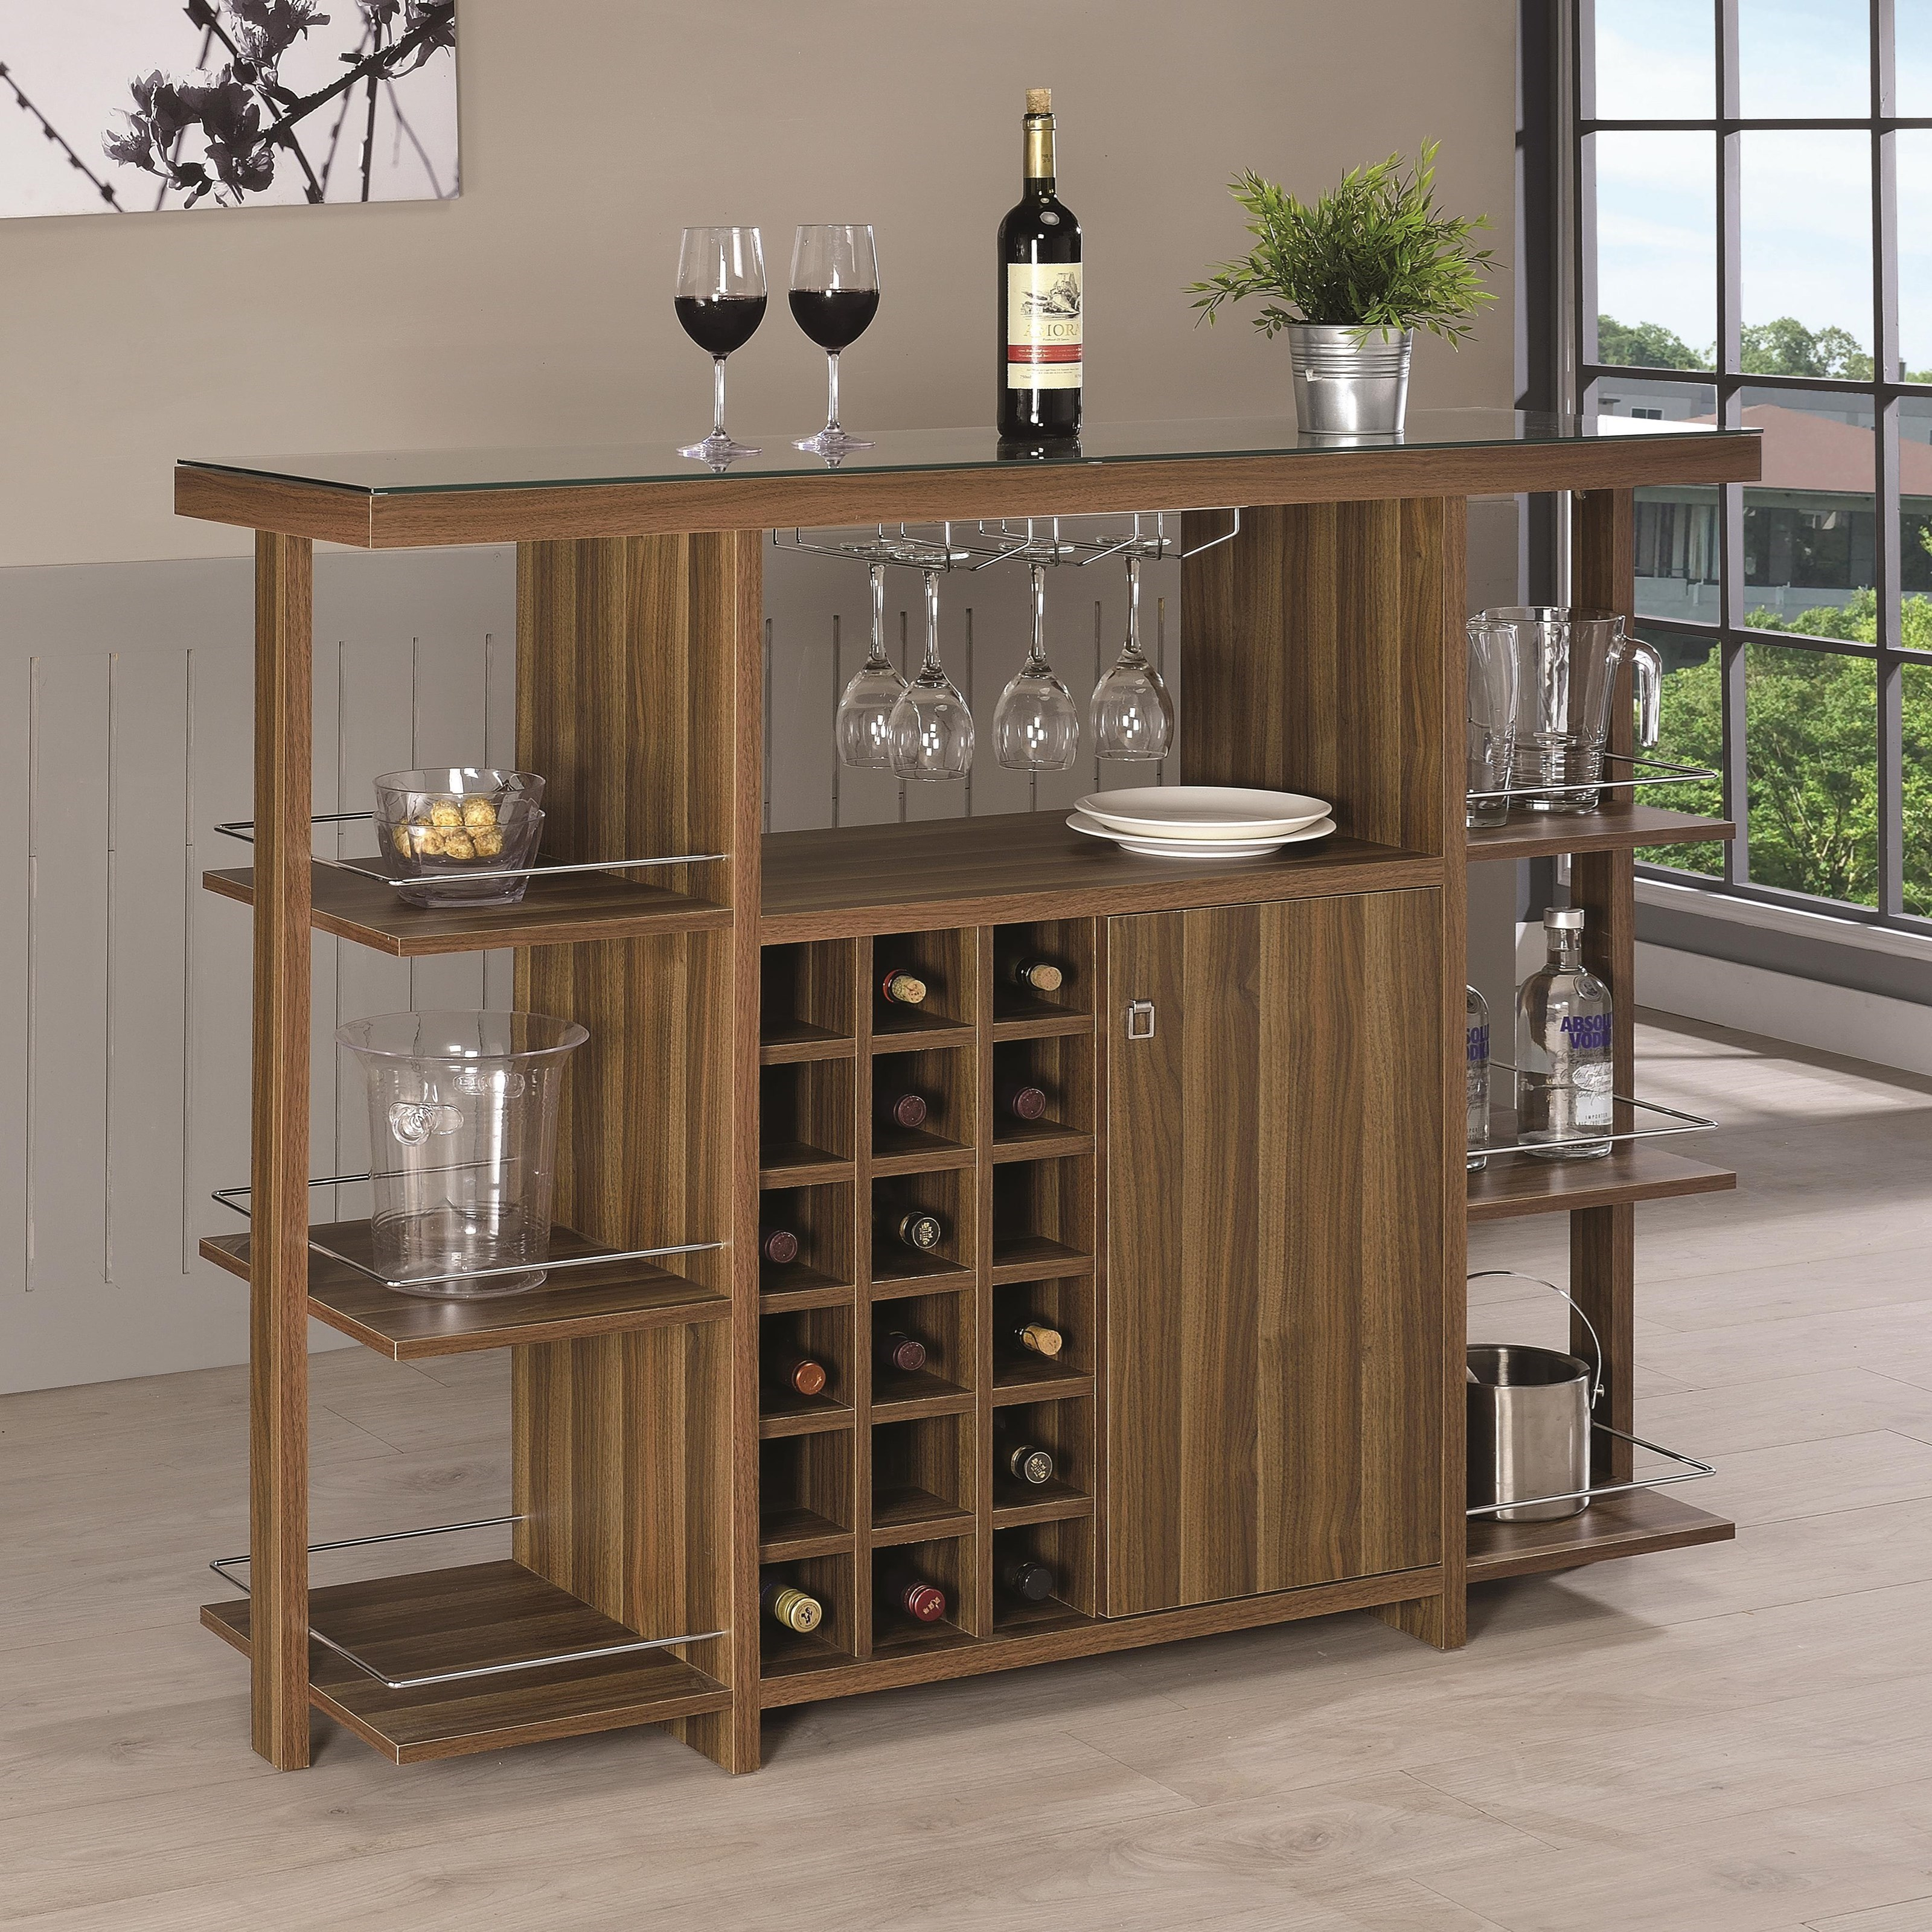 Coaster Bar Units and Bar Tables Modern Bar Unit with Wine Bottle Storage & Coaster Bar Units and Bar Tables Modern Bar Unit with Wine Bottle ...